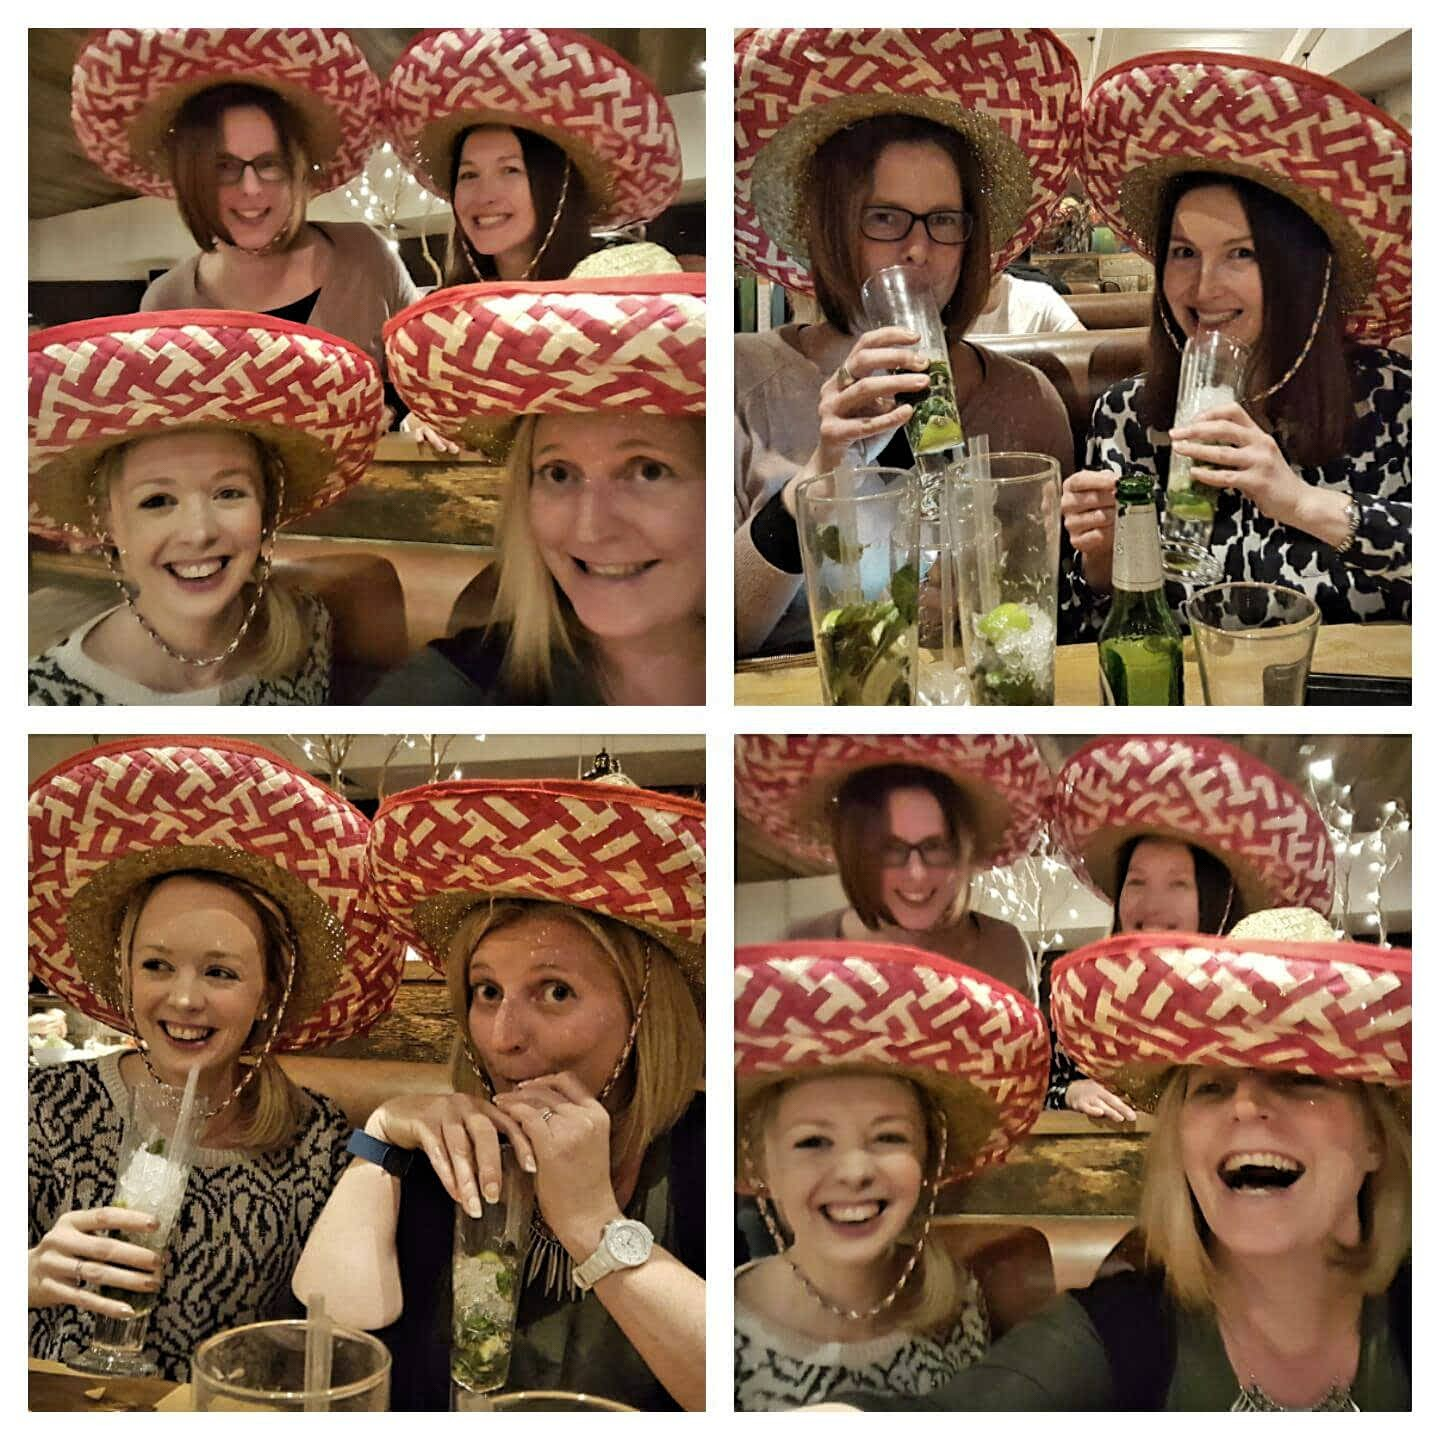 Friends in Mexican Hats